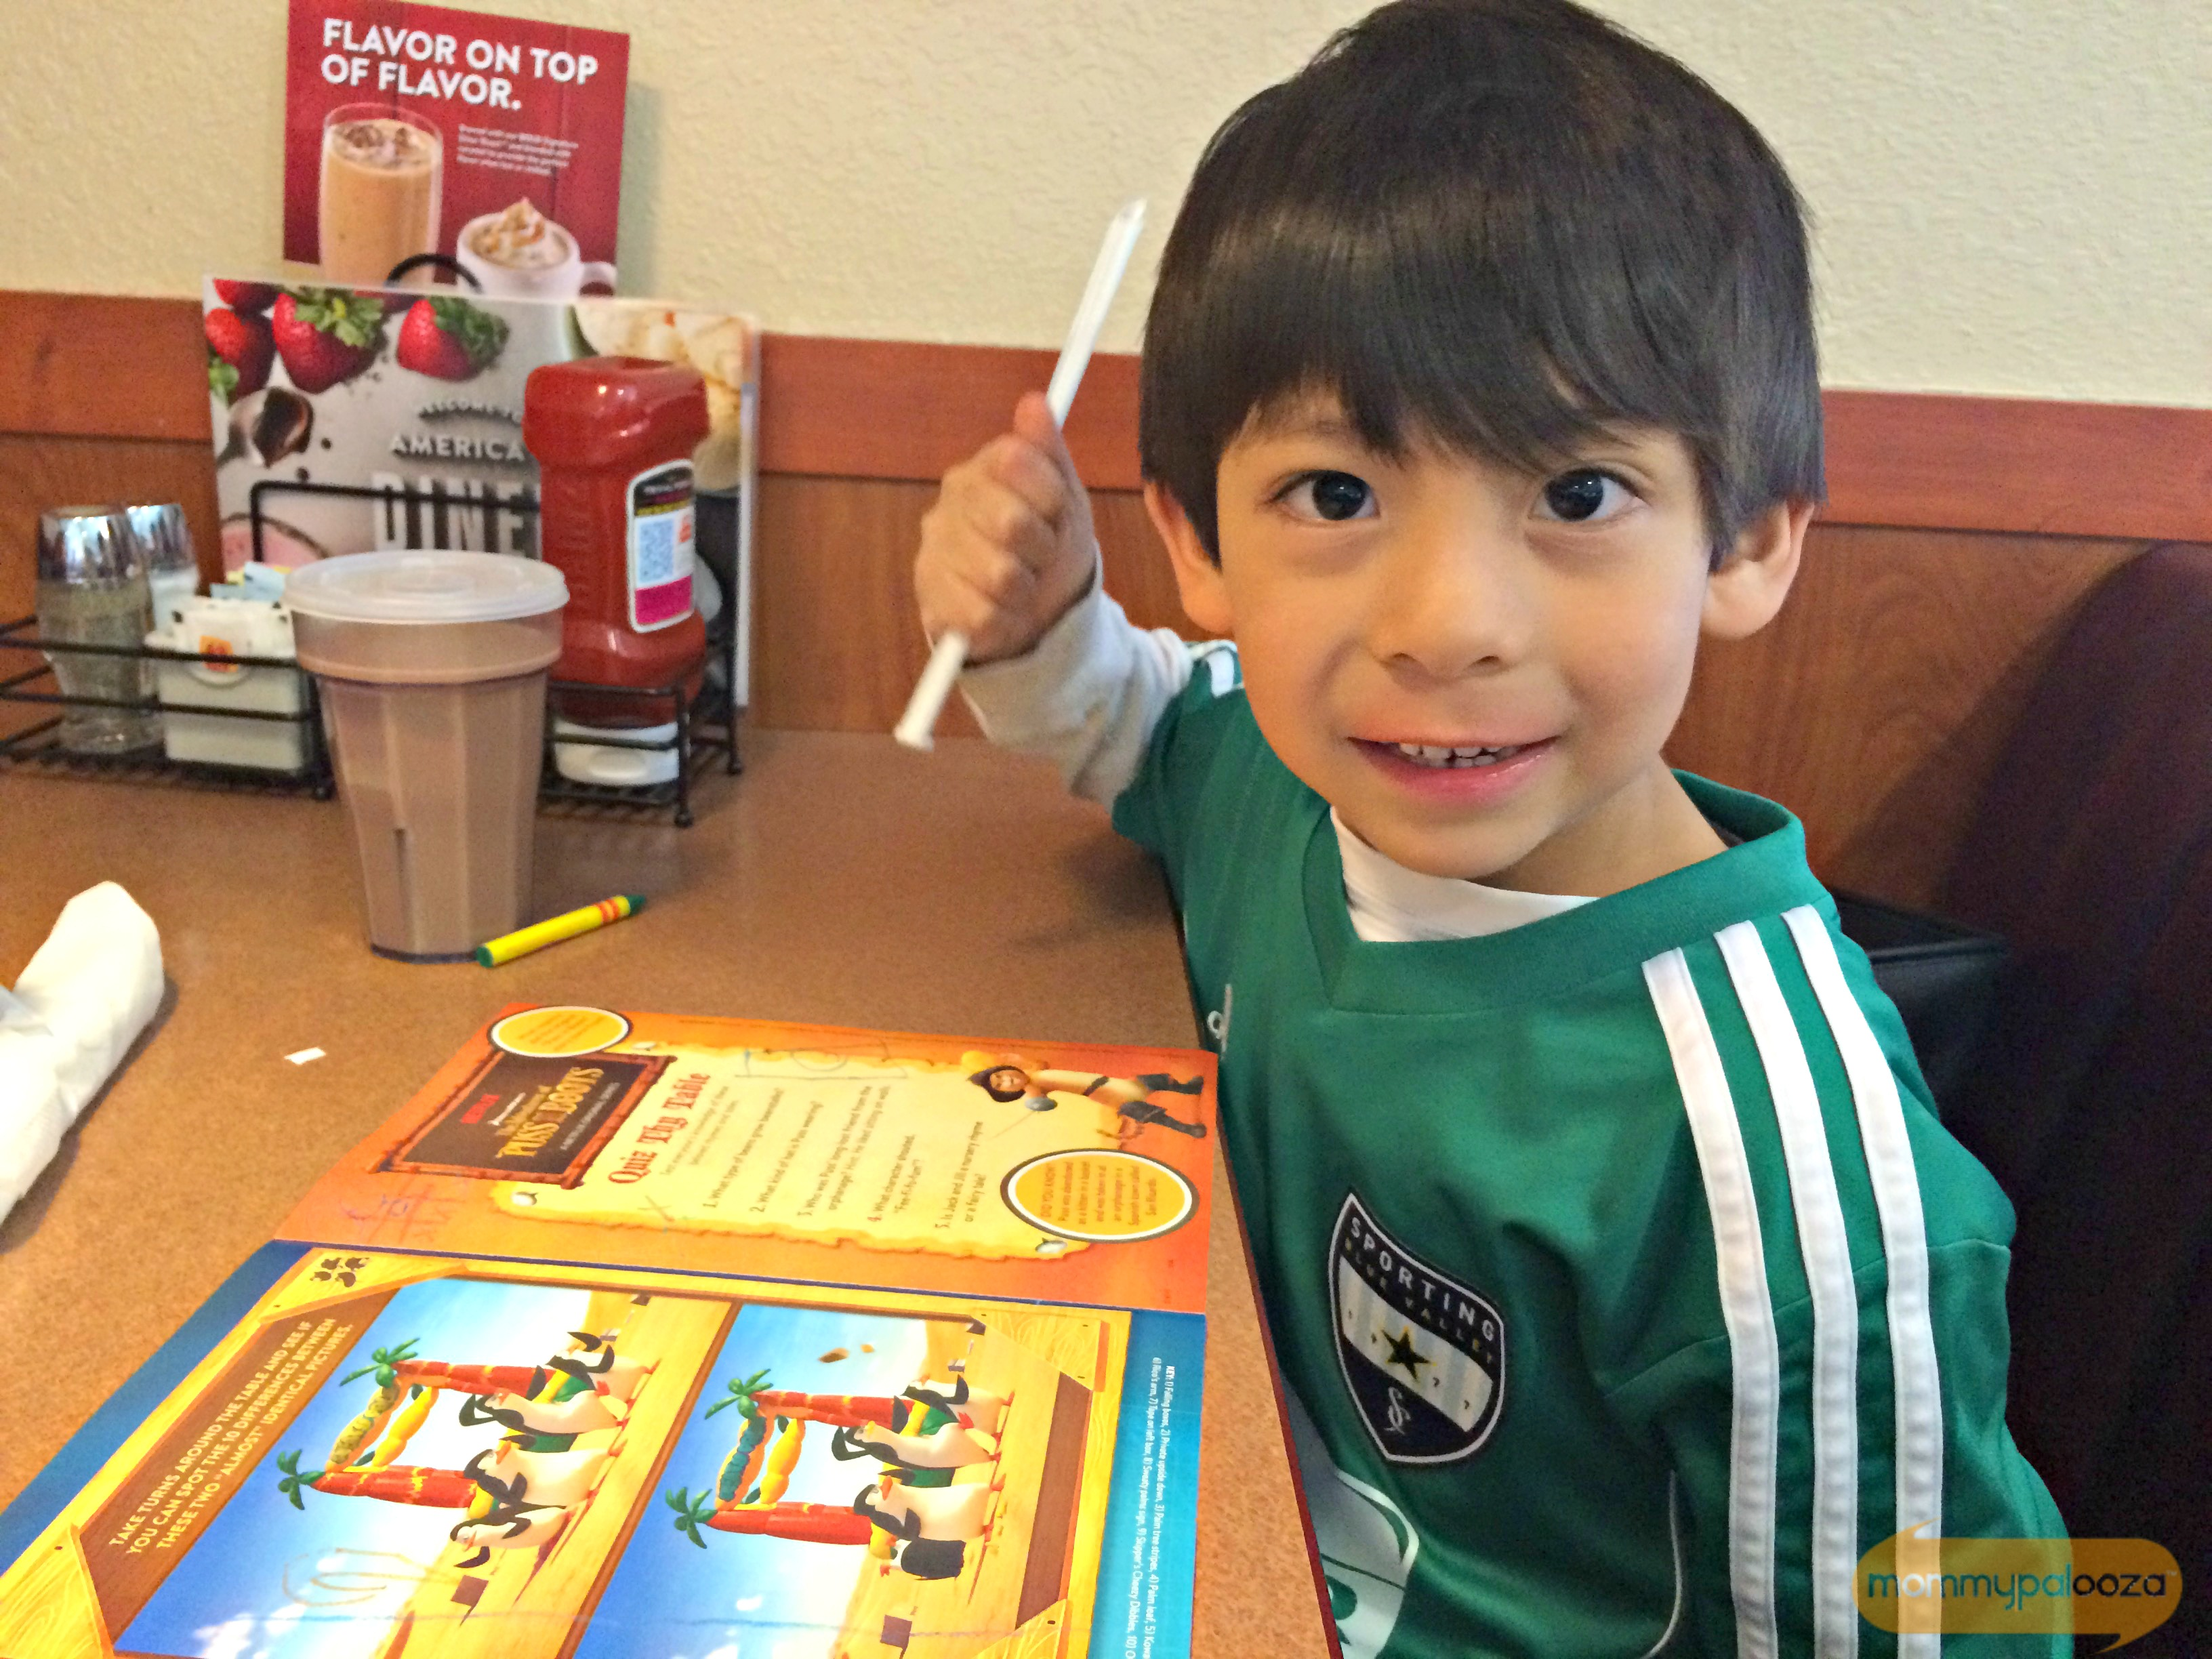 Denny's and DreamWorks Animation Bringing Family Fun to the Table #DennysDiners